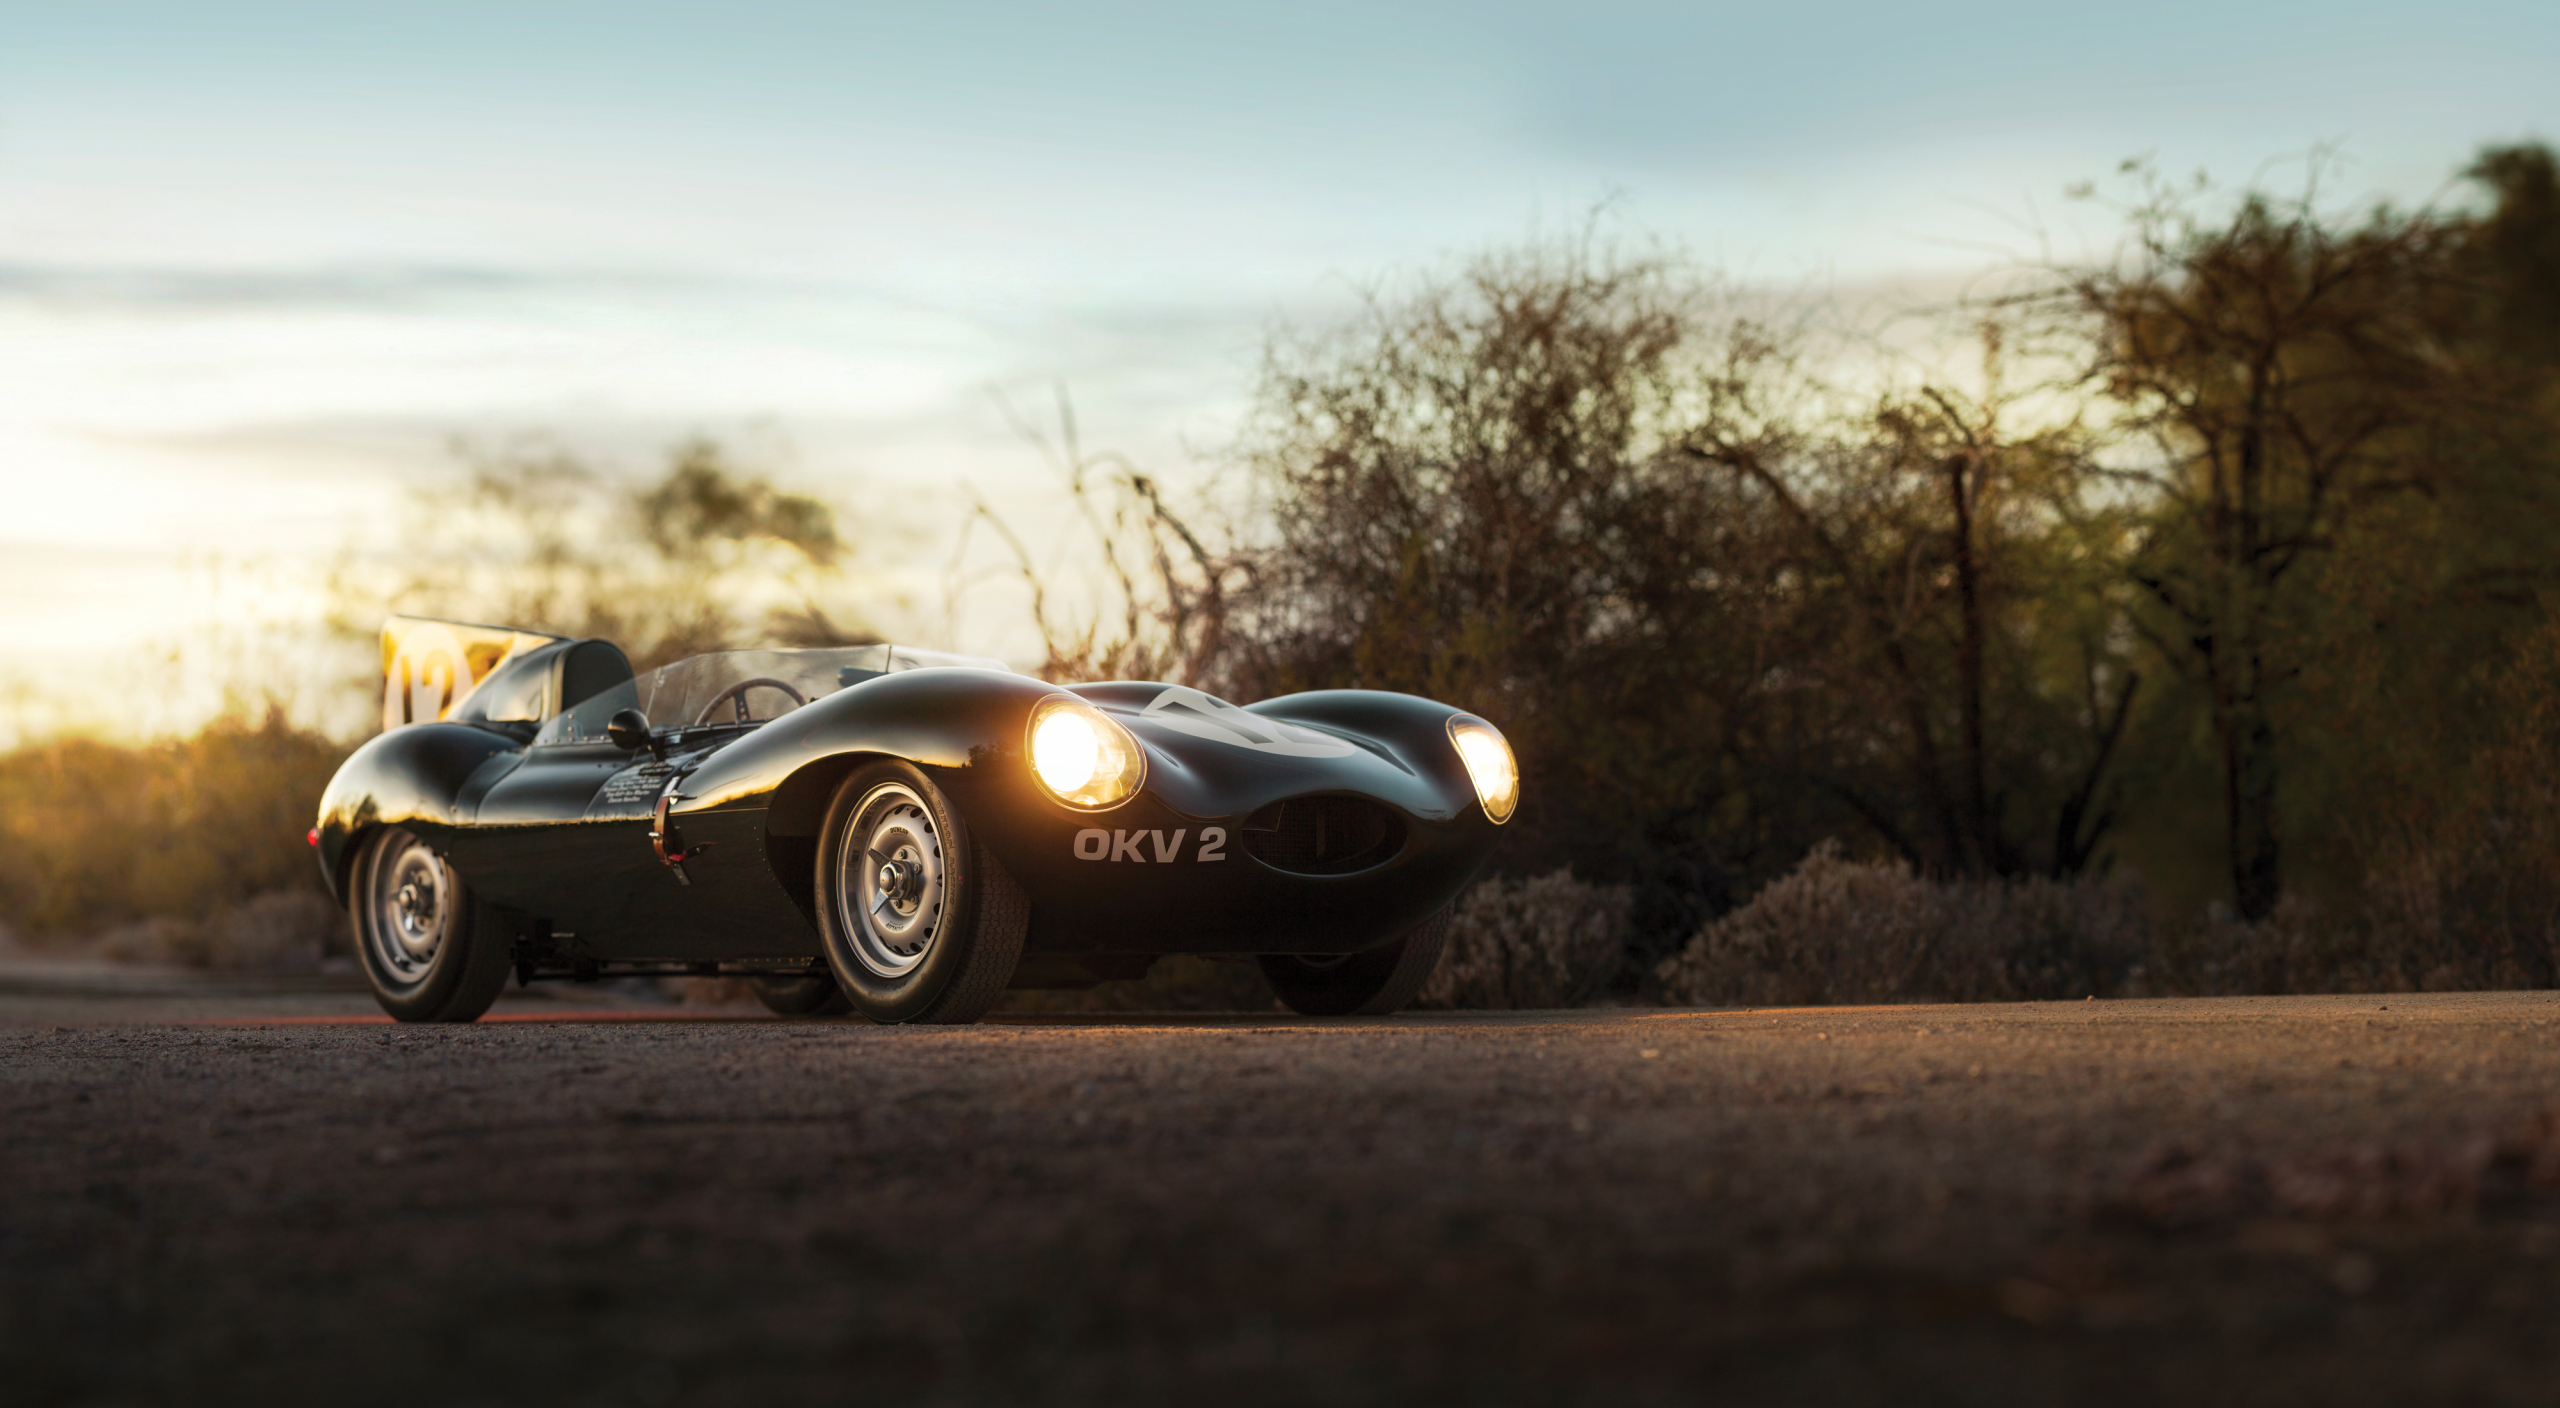 ex-Stirling Moss Jaguar D-Type sunset